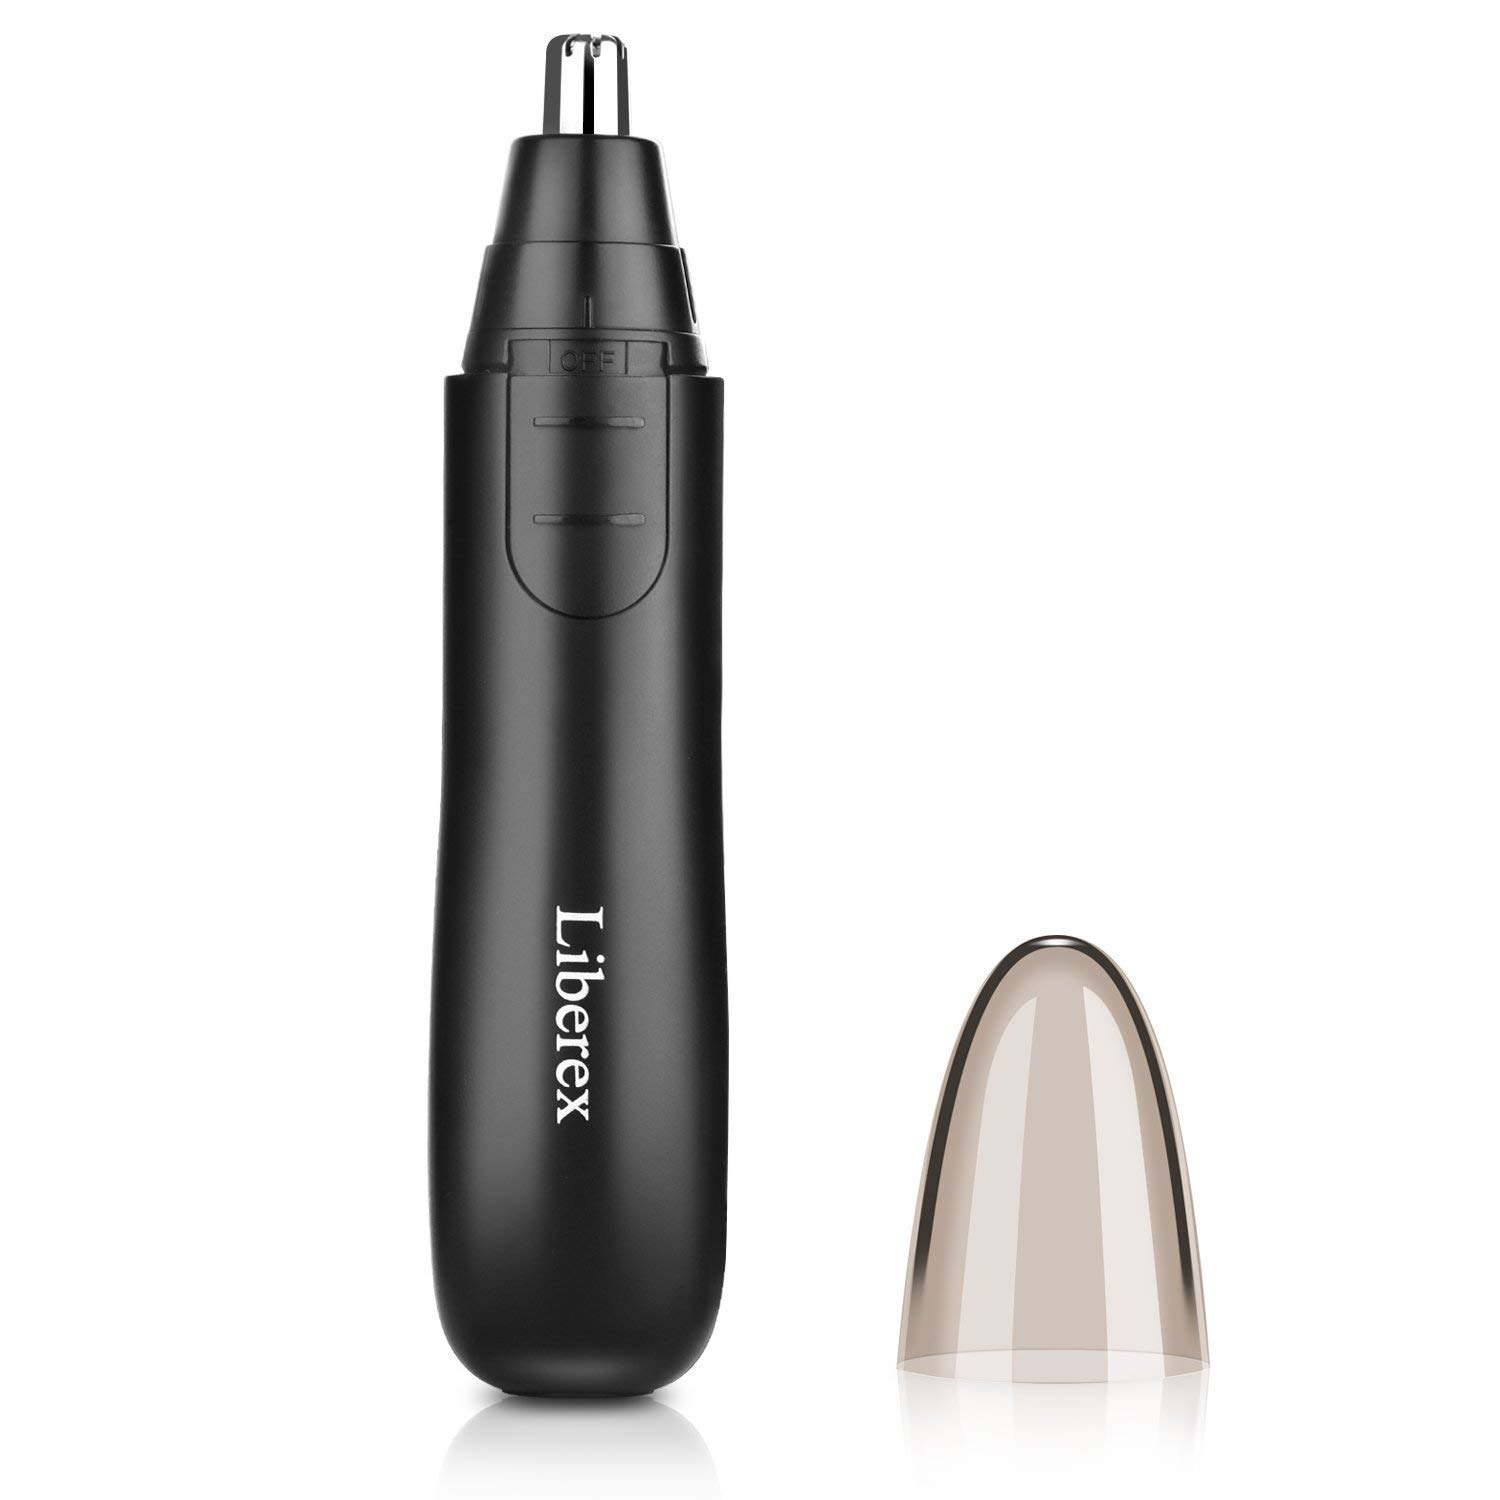 Liberex Electronic Nose Ear Hair Trimmer for Men Women, Painless Trimming